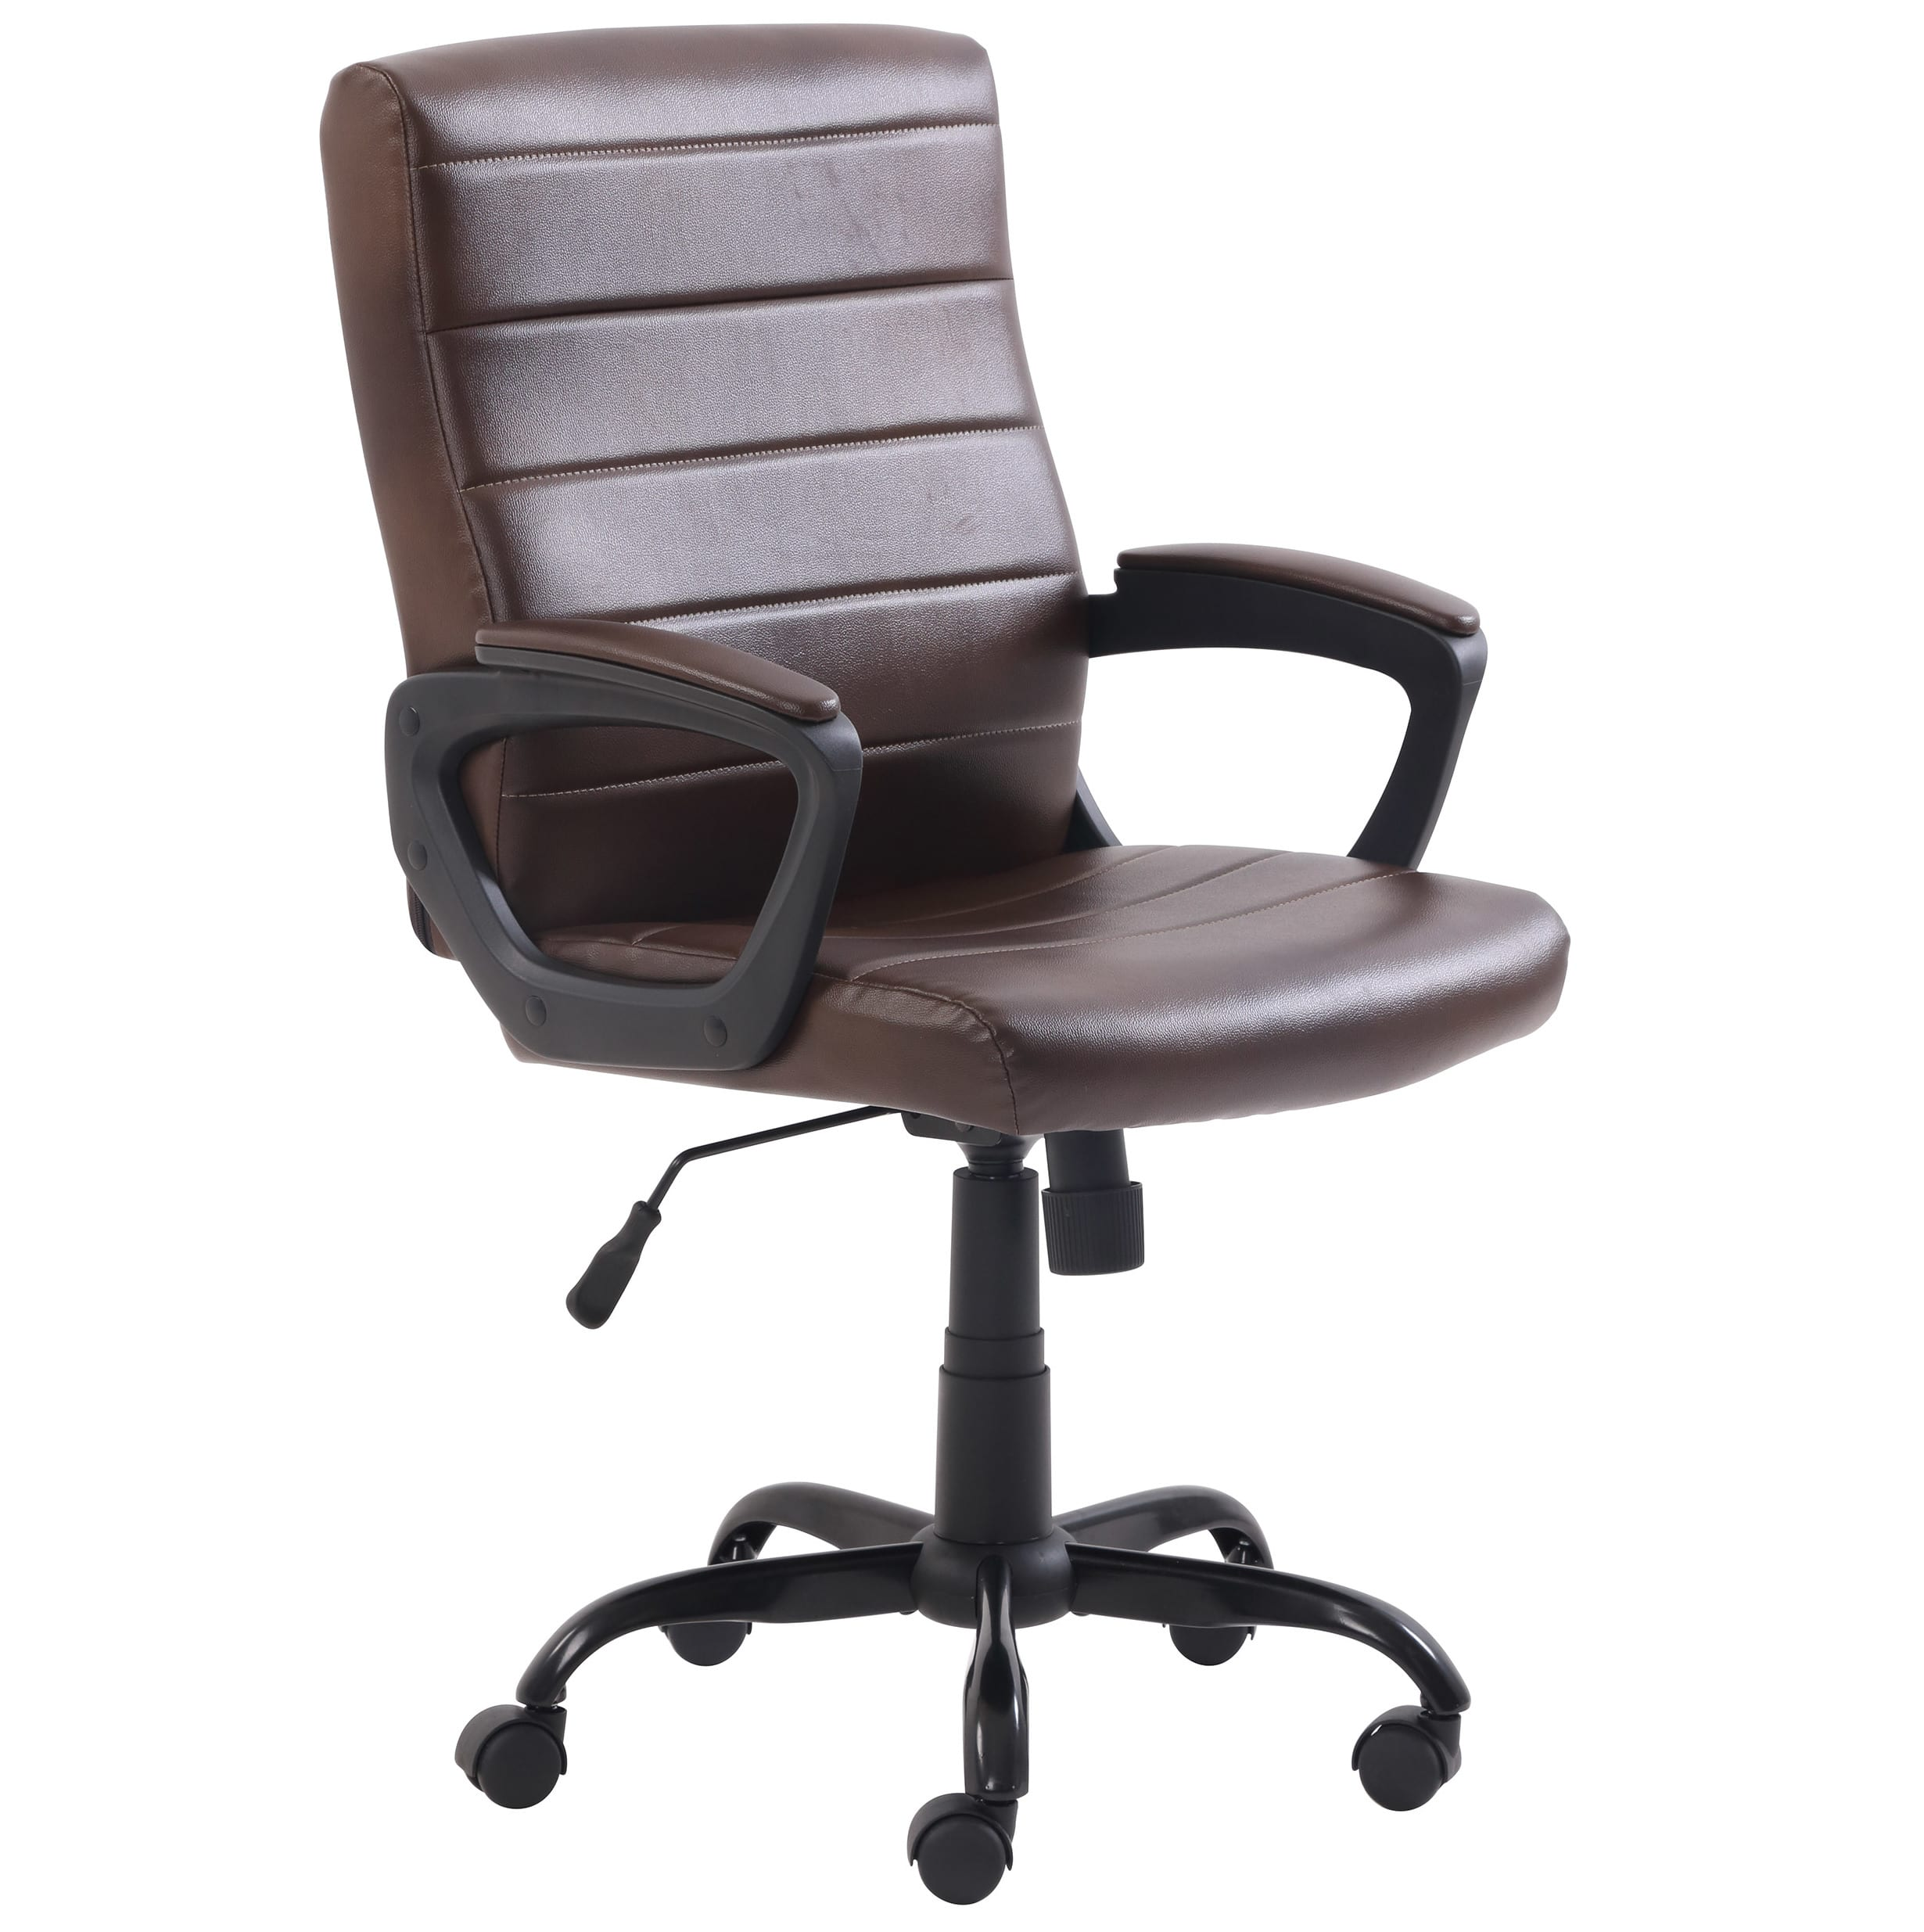 mainstays mid back office chair instructions